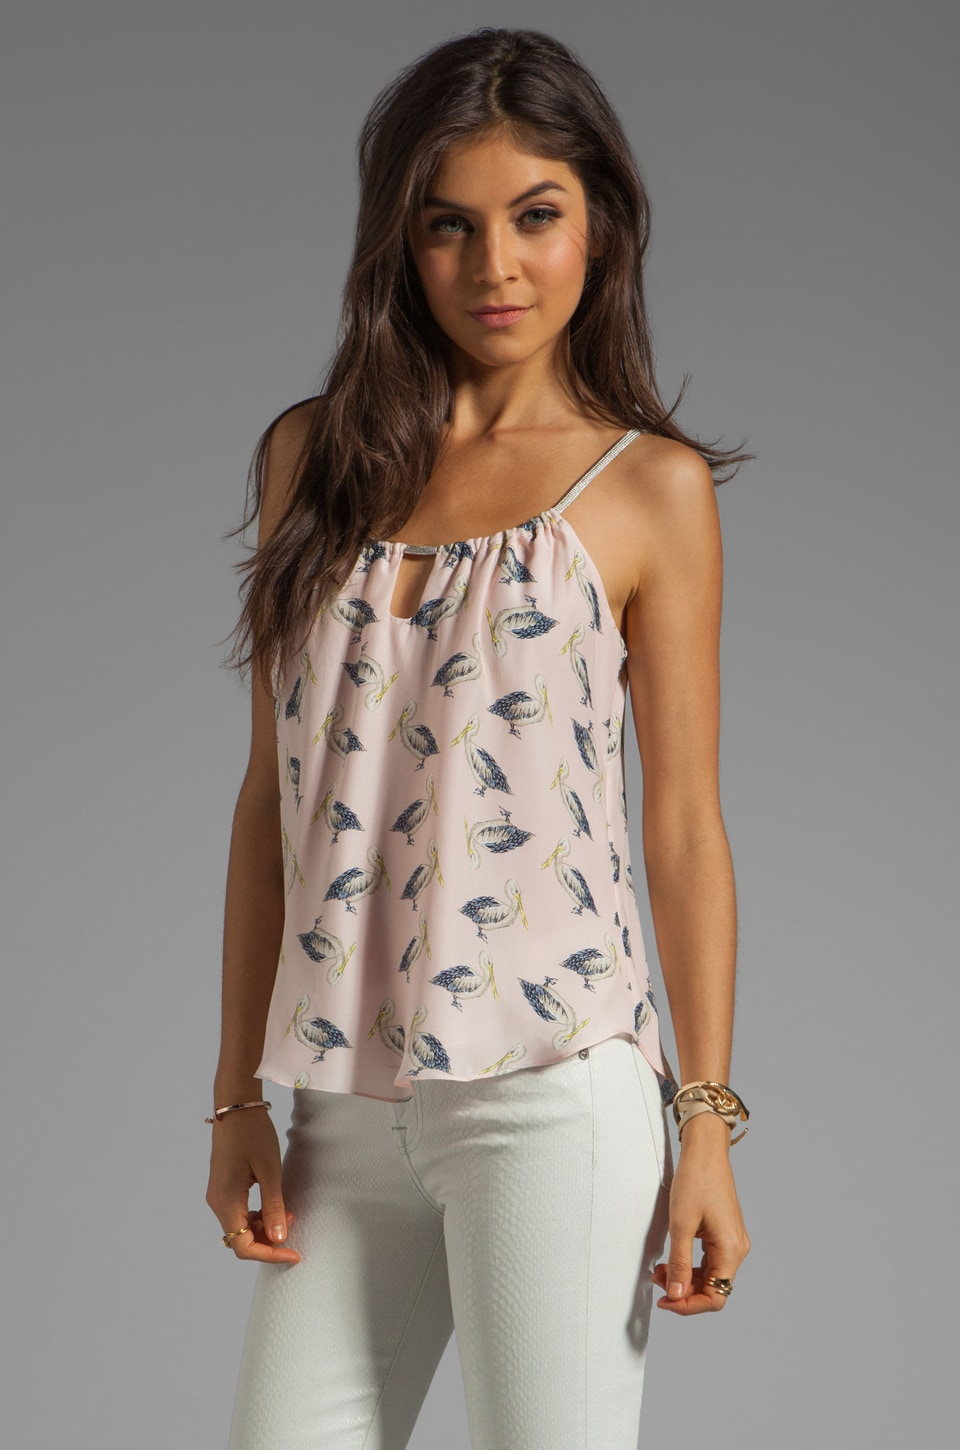 MILLY Pellicano Print on Silk Crepe Paolo Tank in Blush